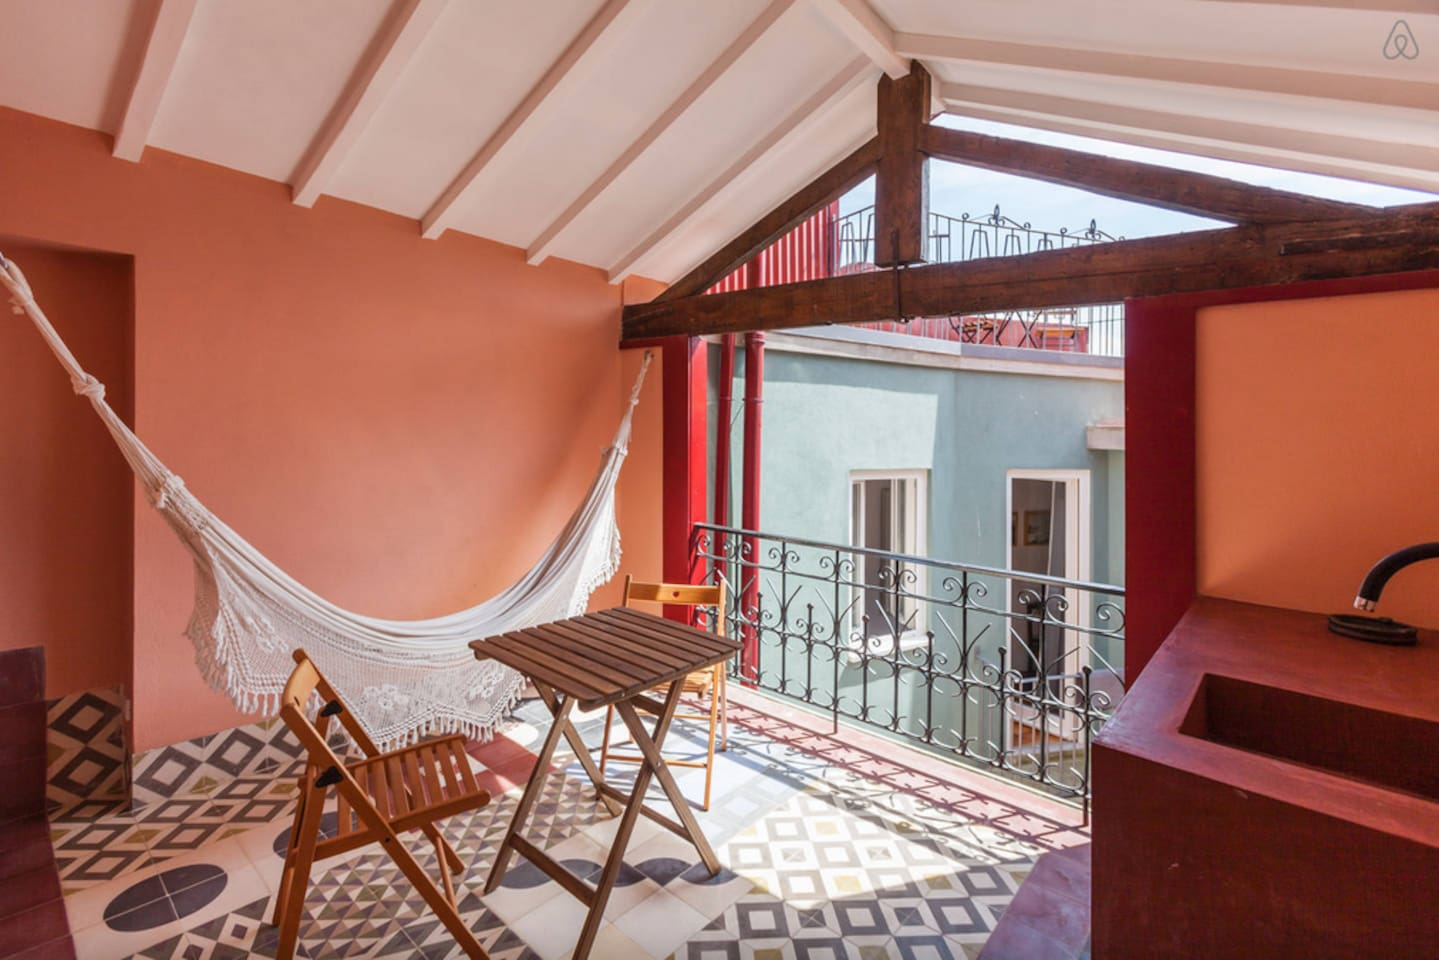 The apartment is located in the city center close to every important spot. It is the best option for business travelers, families, small groups and everyone who want to feel the history of the city portrayed in this flat.